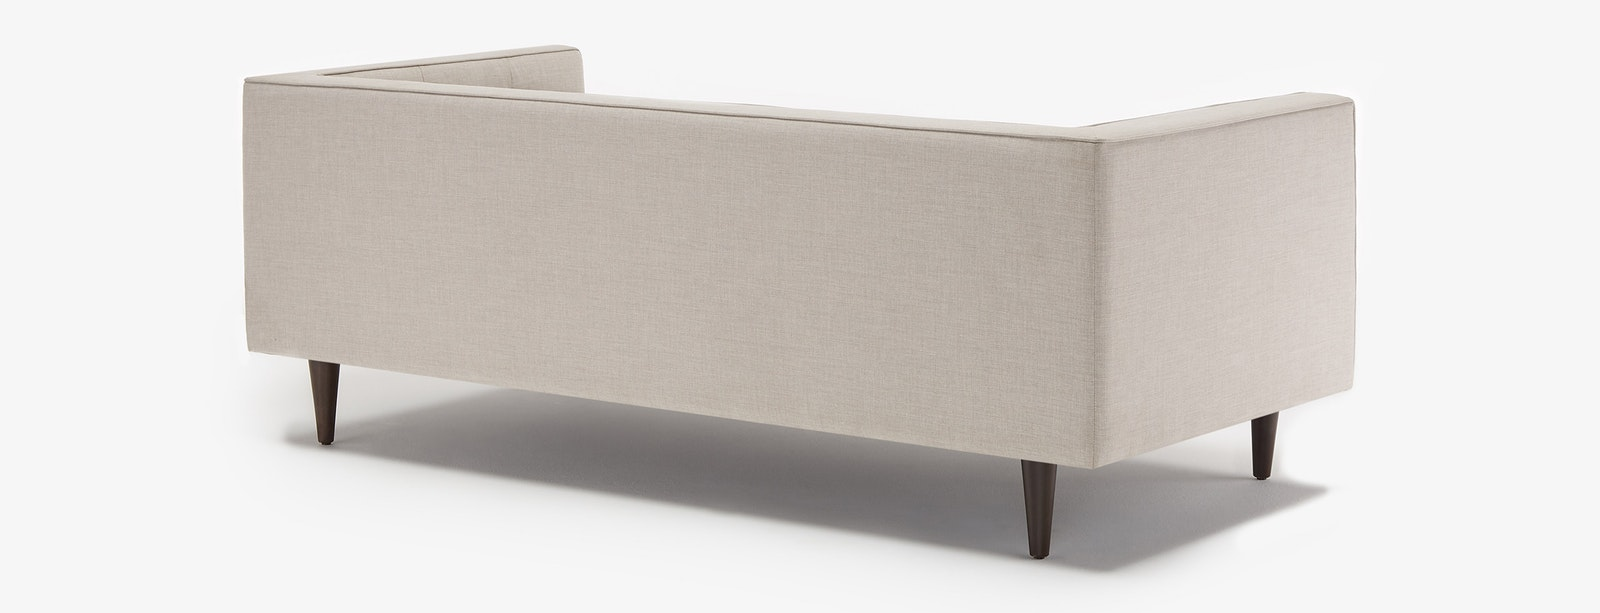 Braxton-Daybed-Bennet-Moon-T1-878